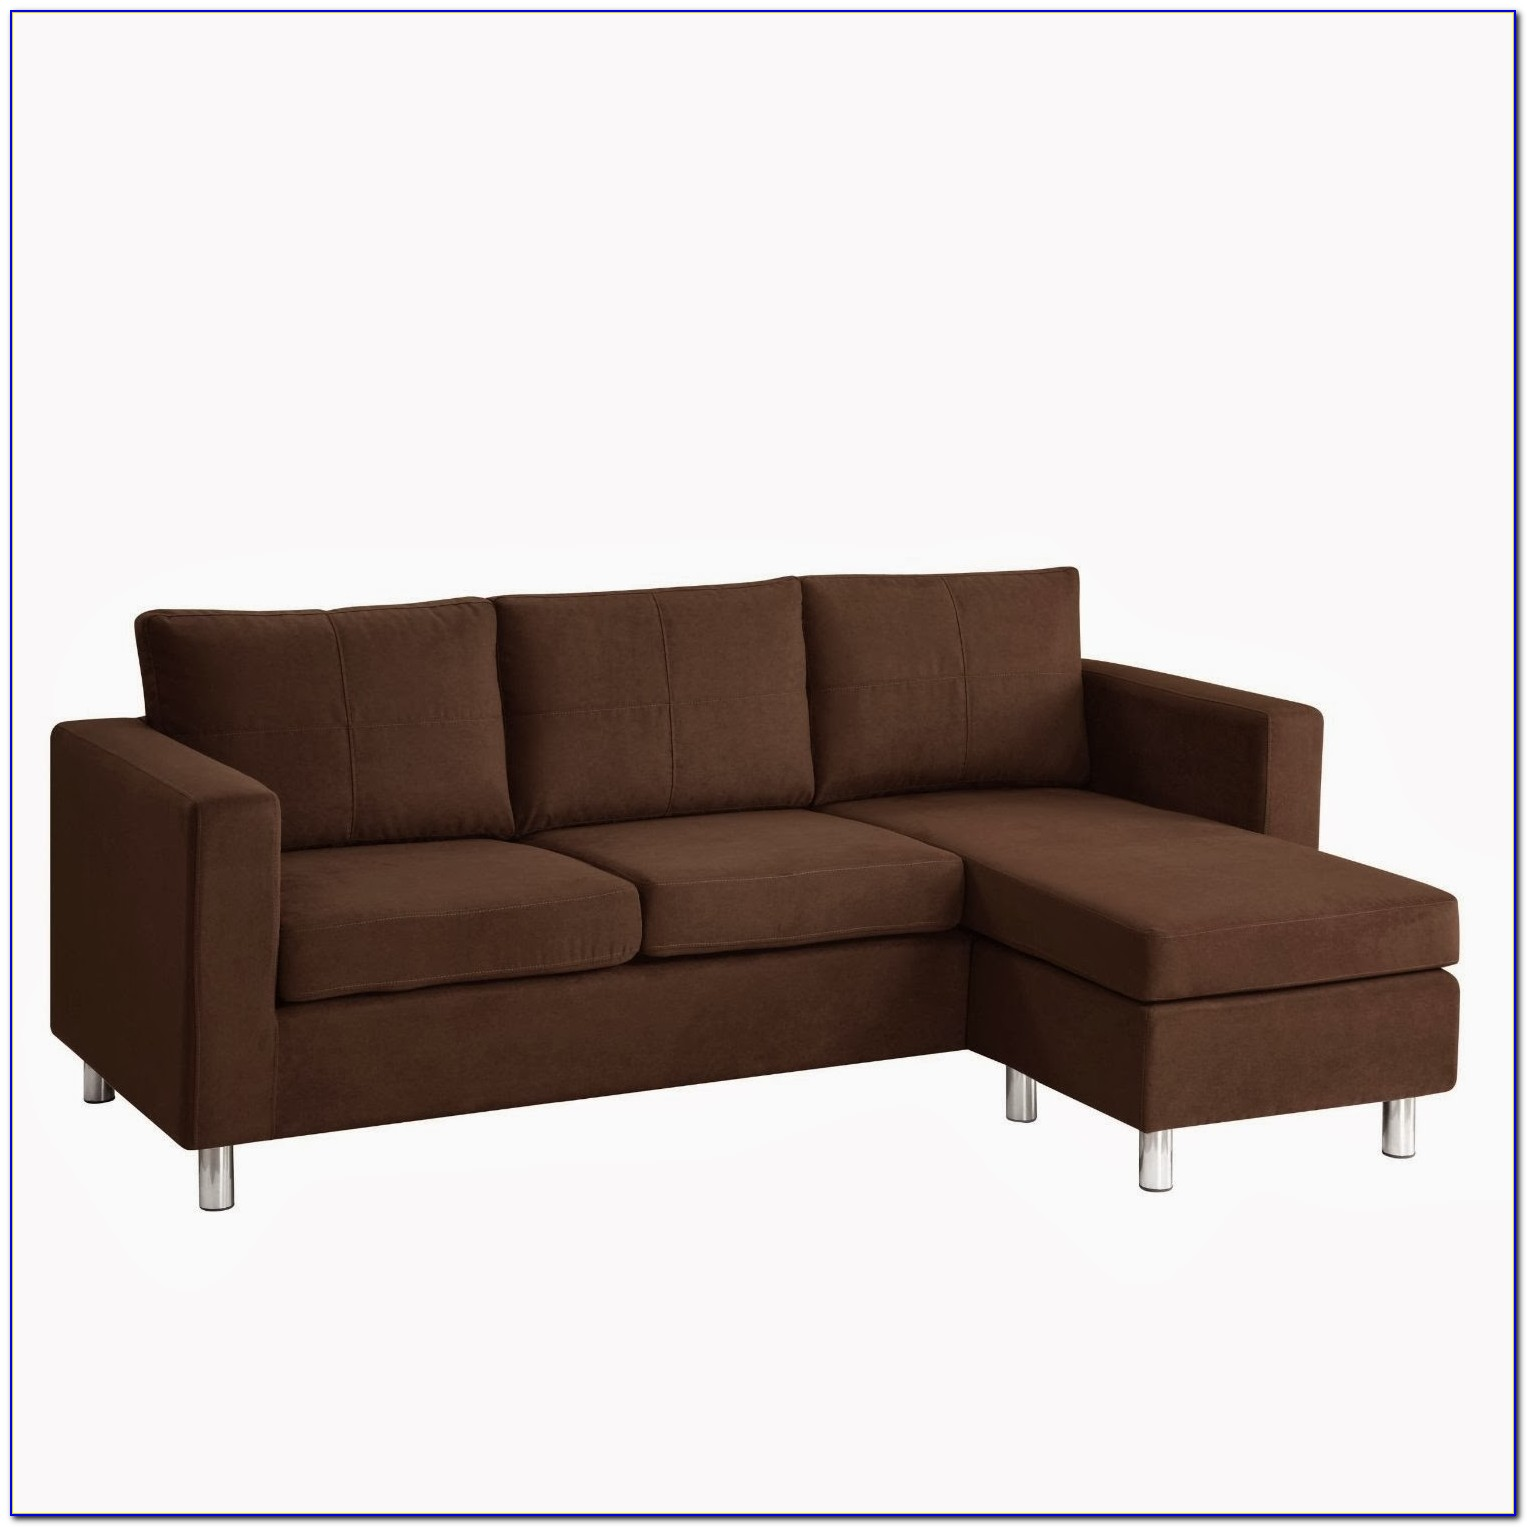 Sectional Furniture With Chaise Lounge